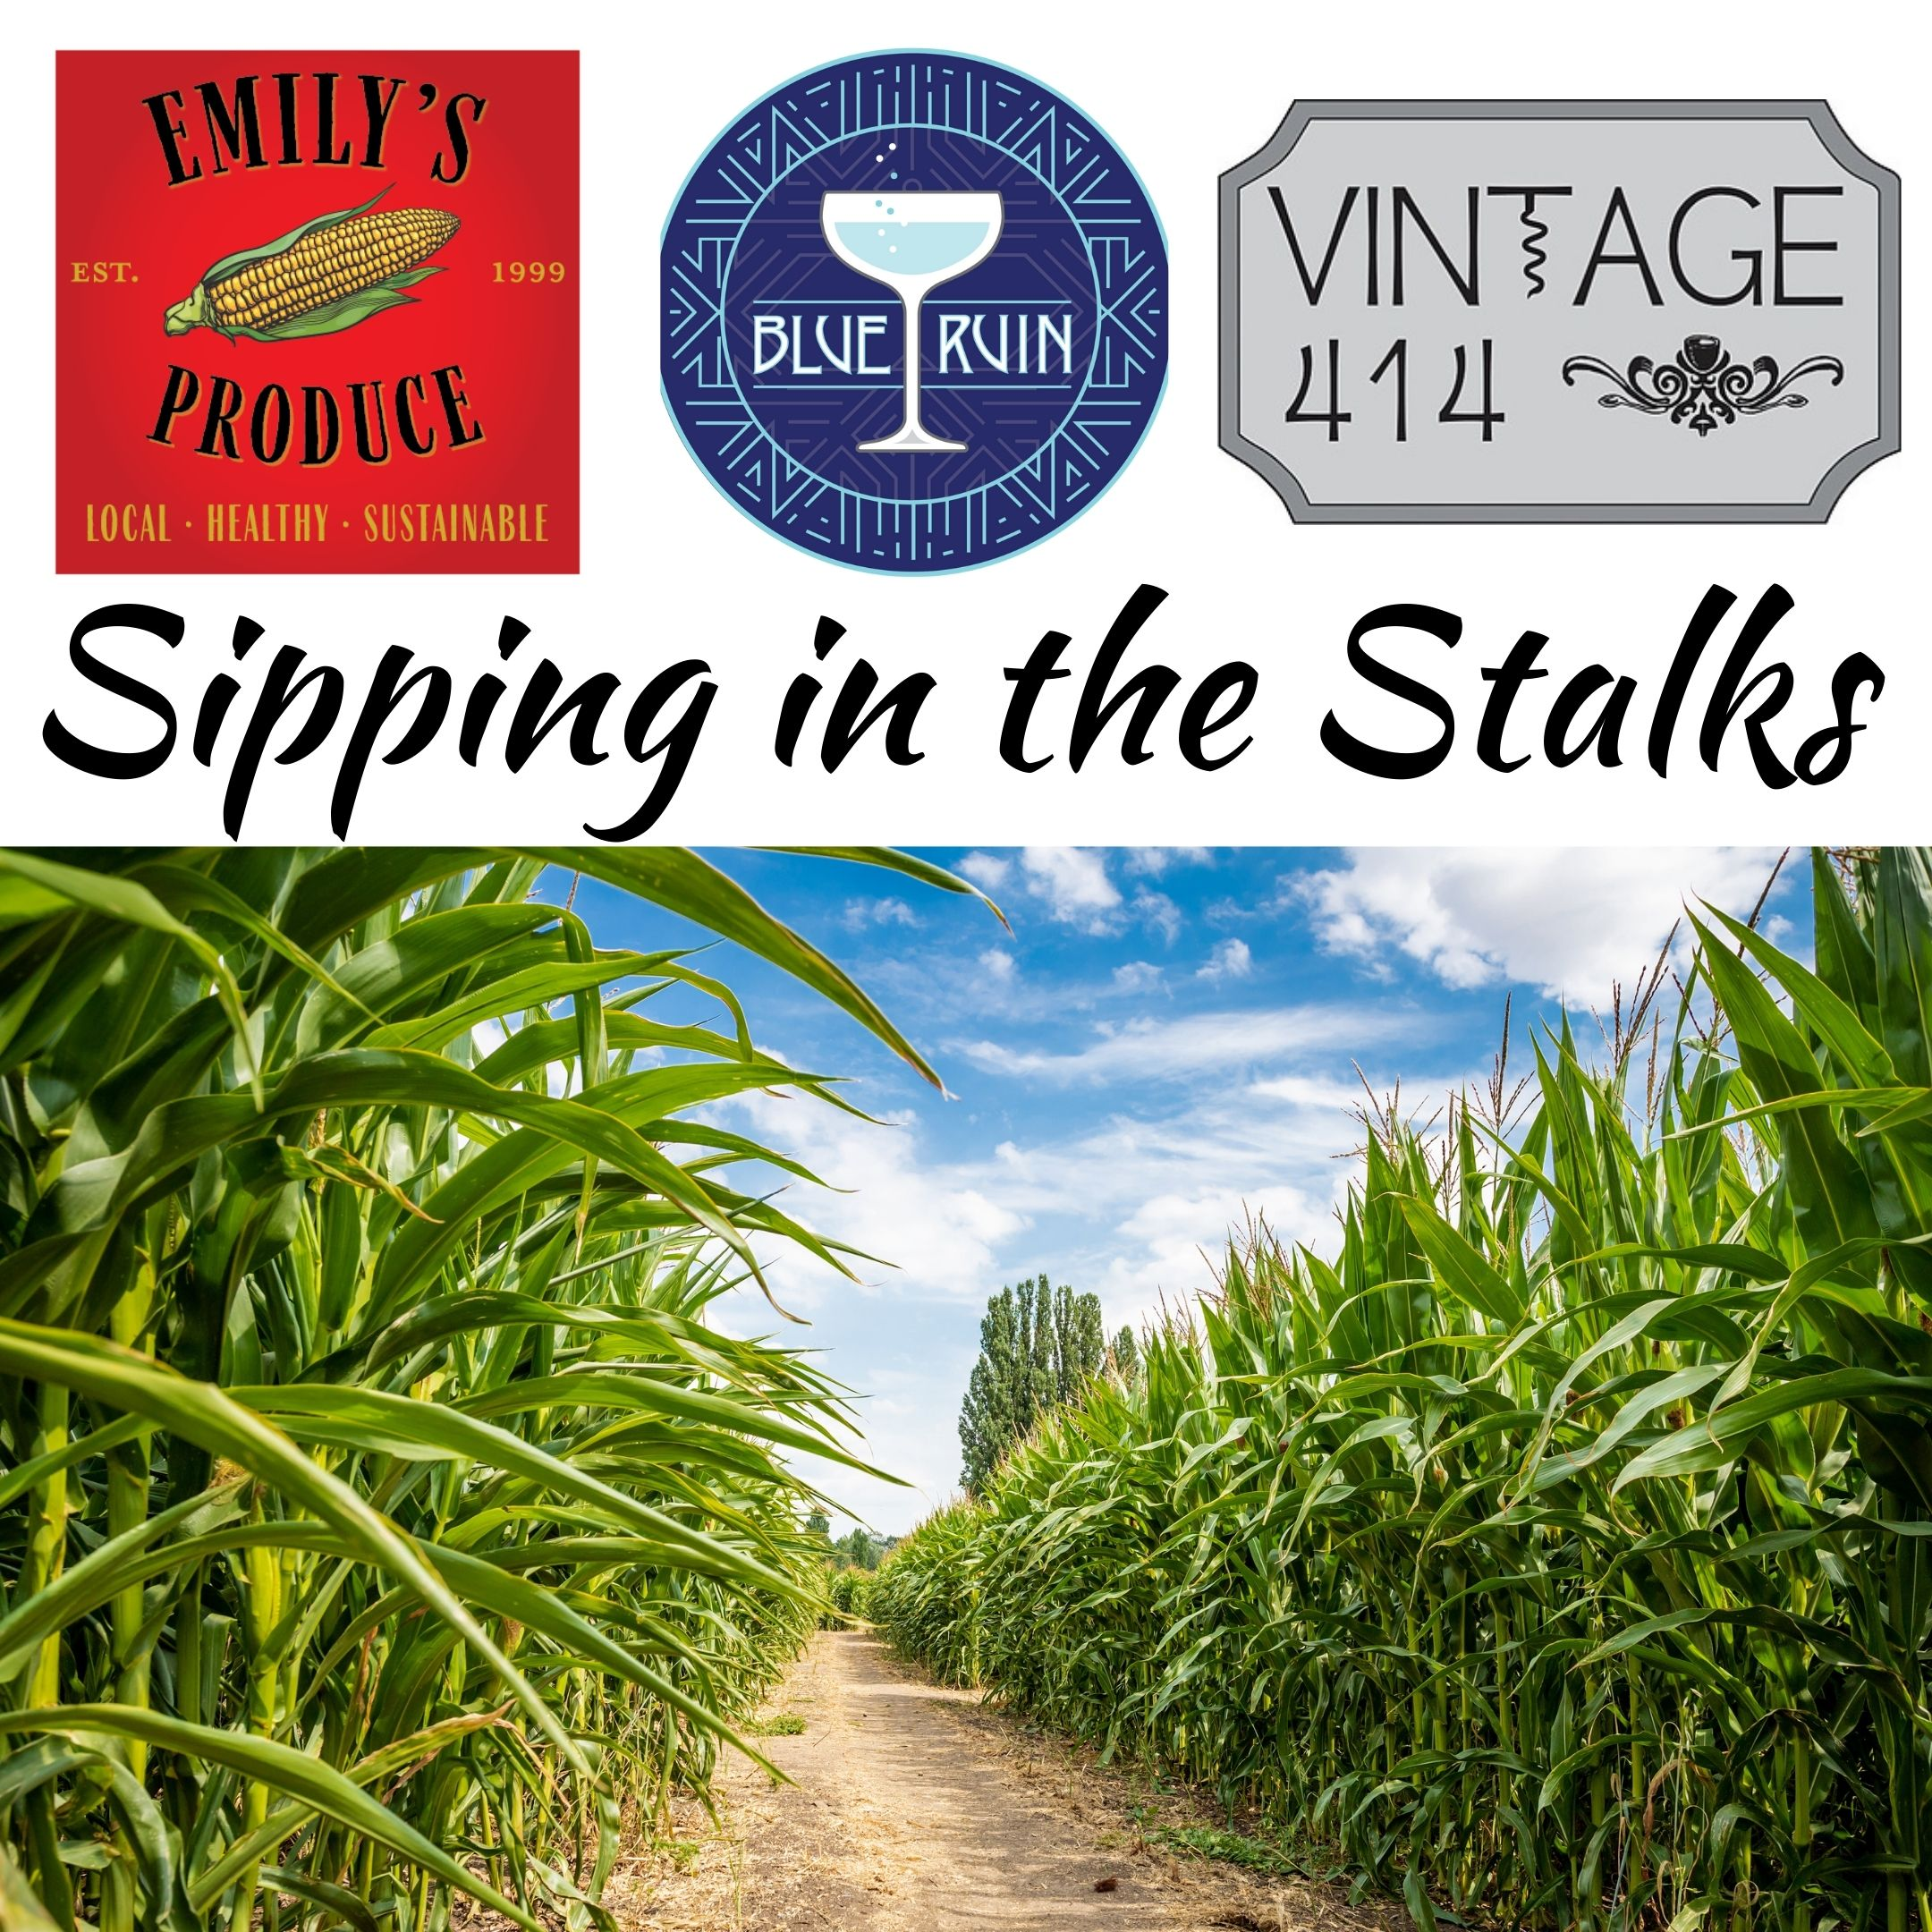 Sipping in the Stalks @ Emily's Produce